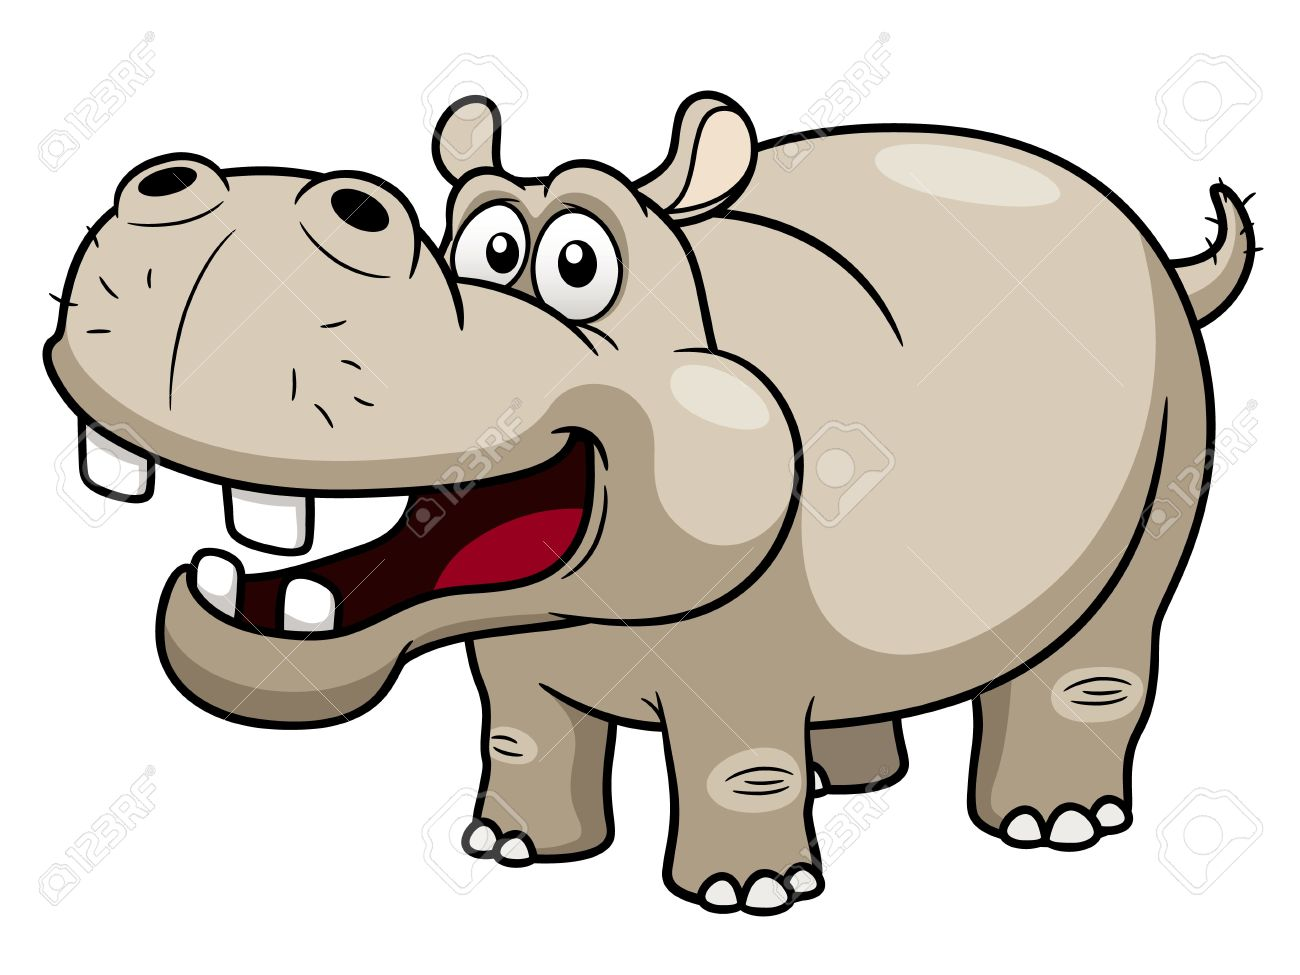 Profile of hippo clipart freeuse stock Hippopotamus Clipart | Free download best Hippopotamus ... freeuse stock